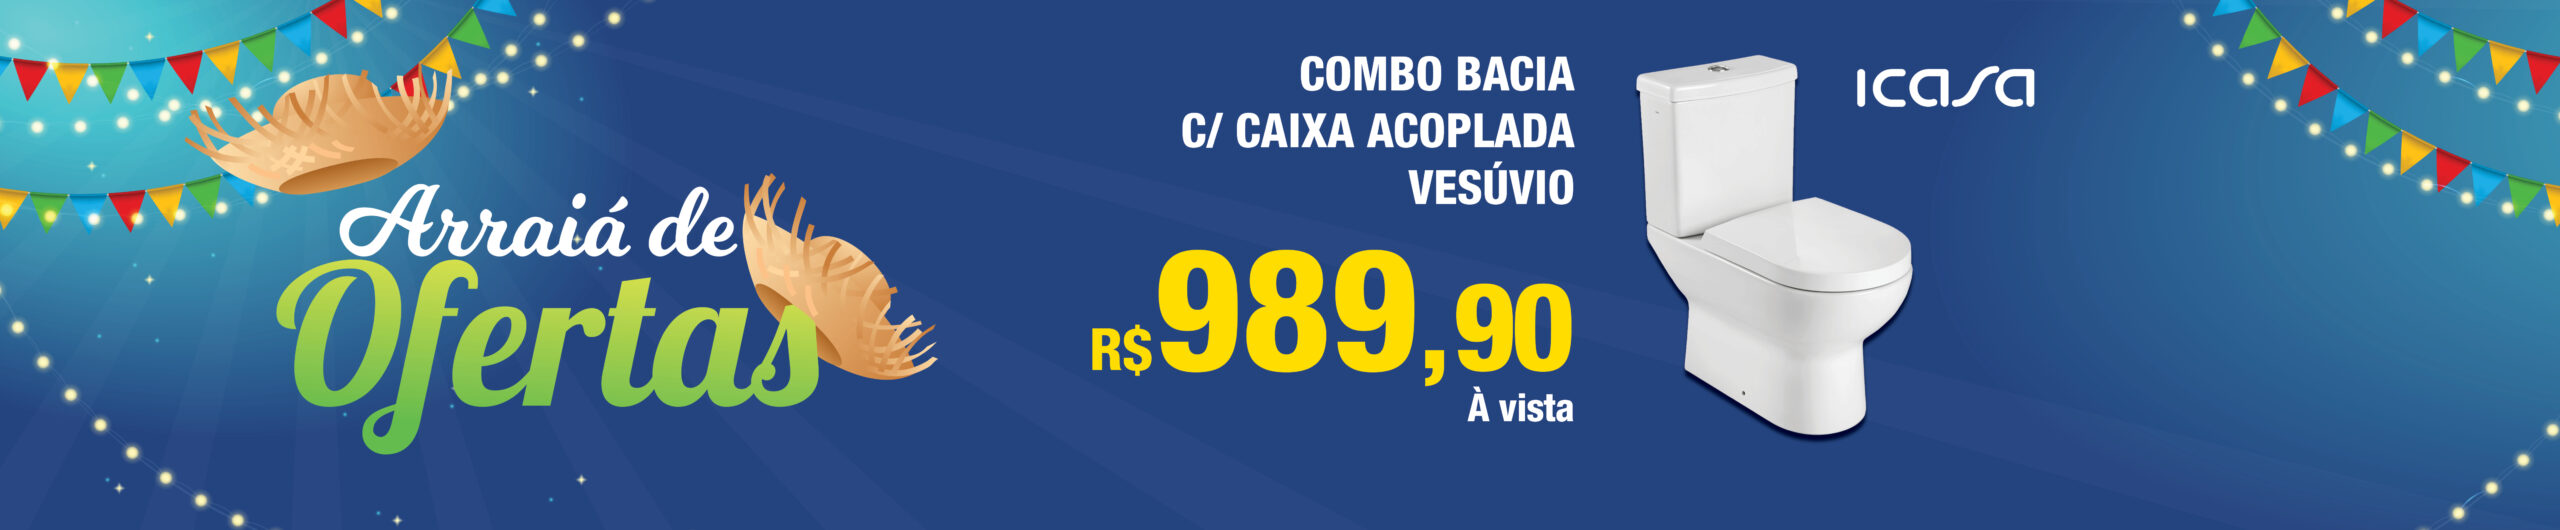 SIMOES_BANNER_SITE_ARRAIA_OFERTAS2-scaled